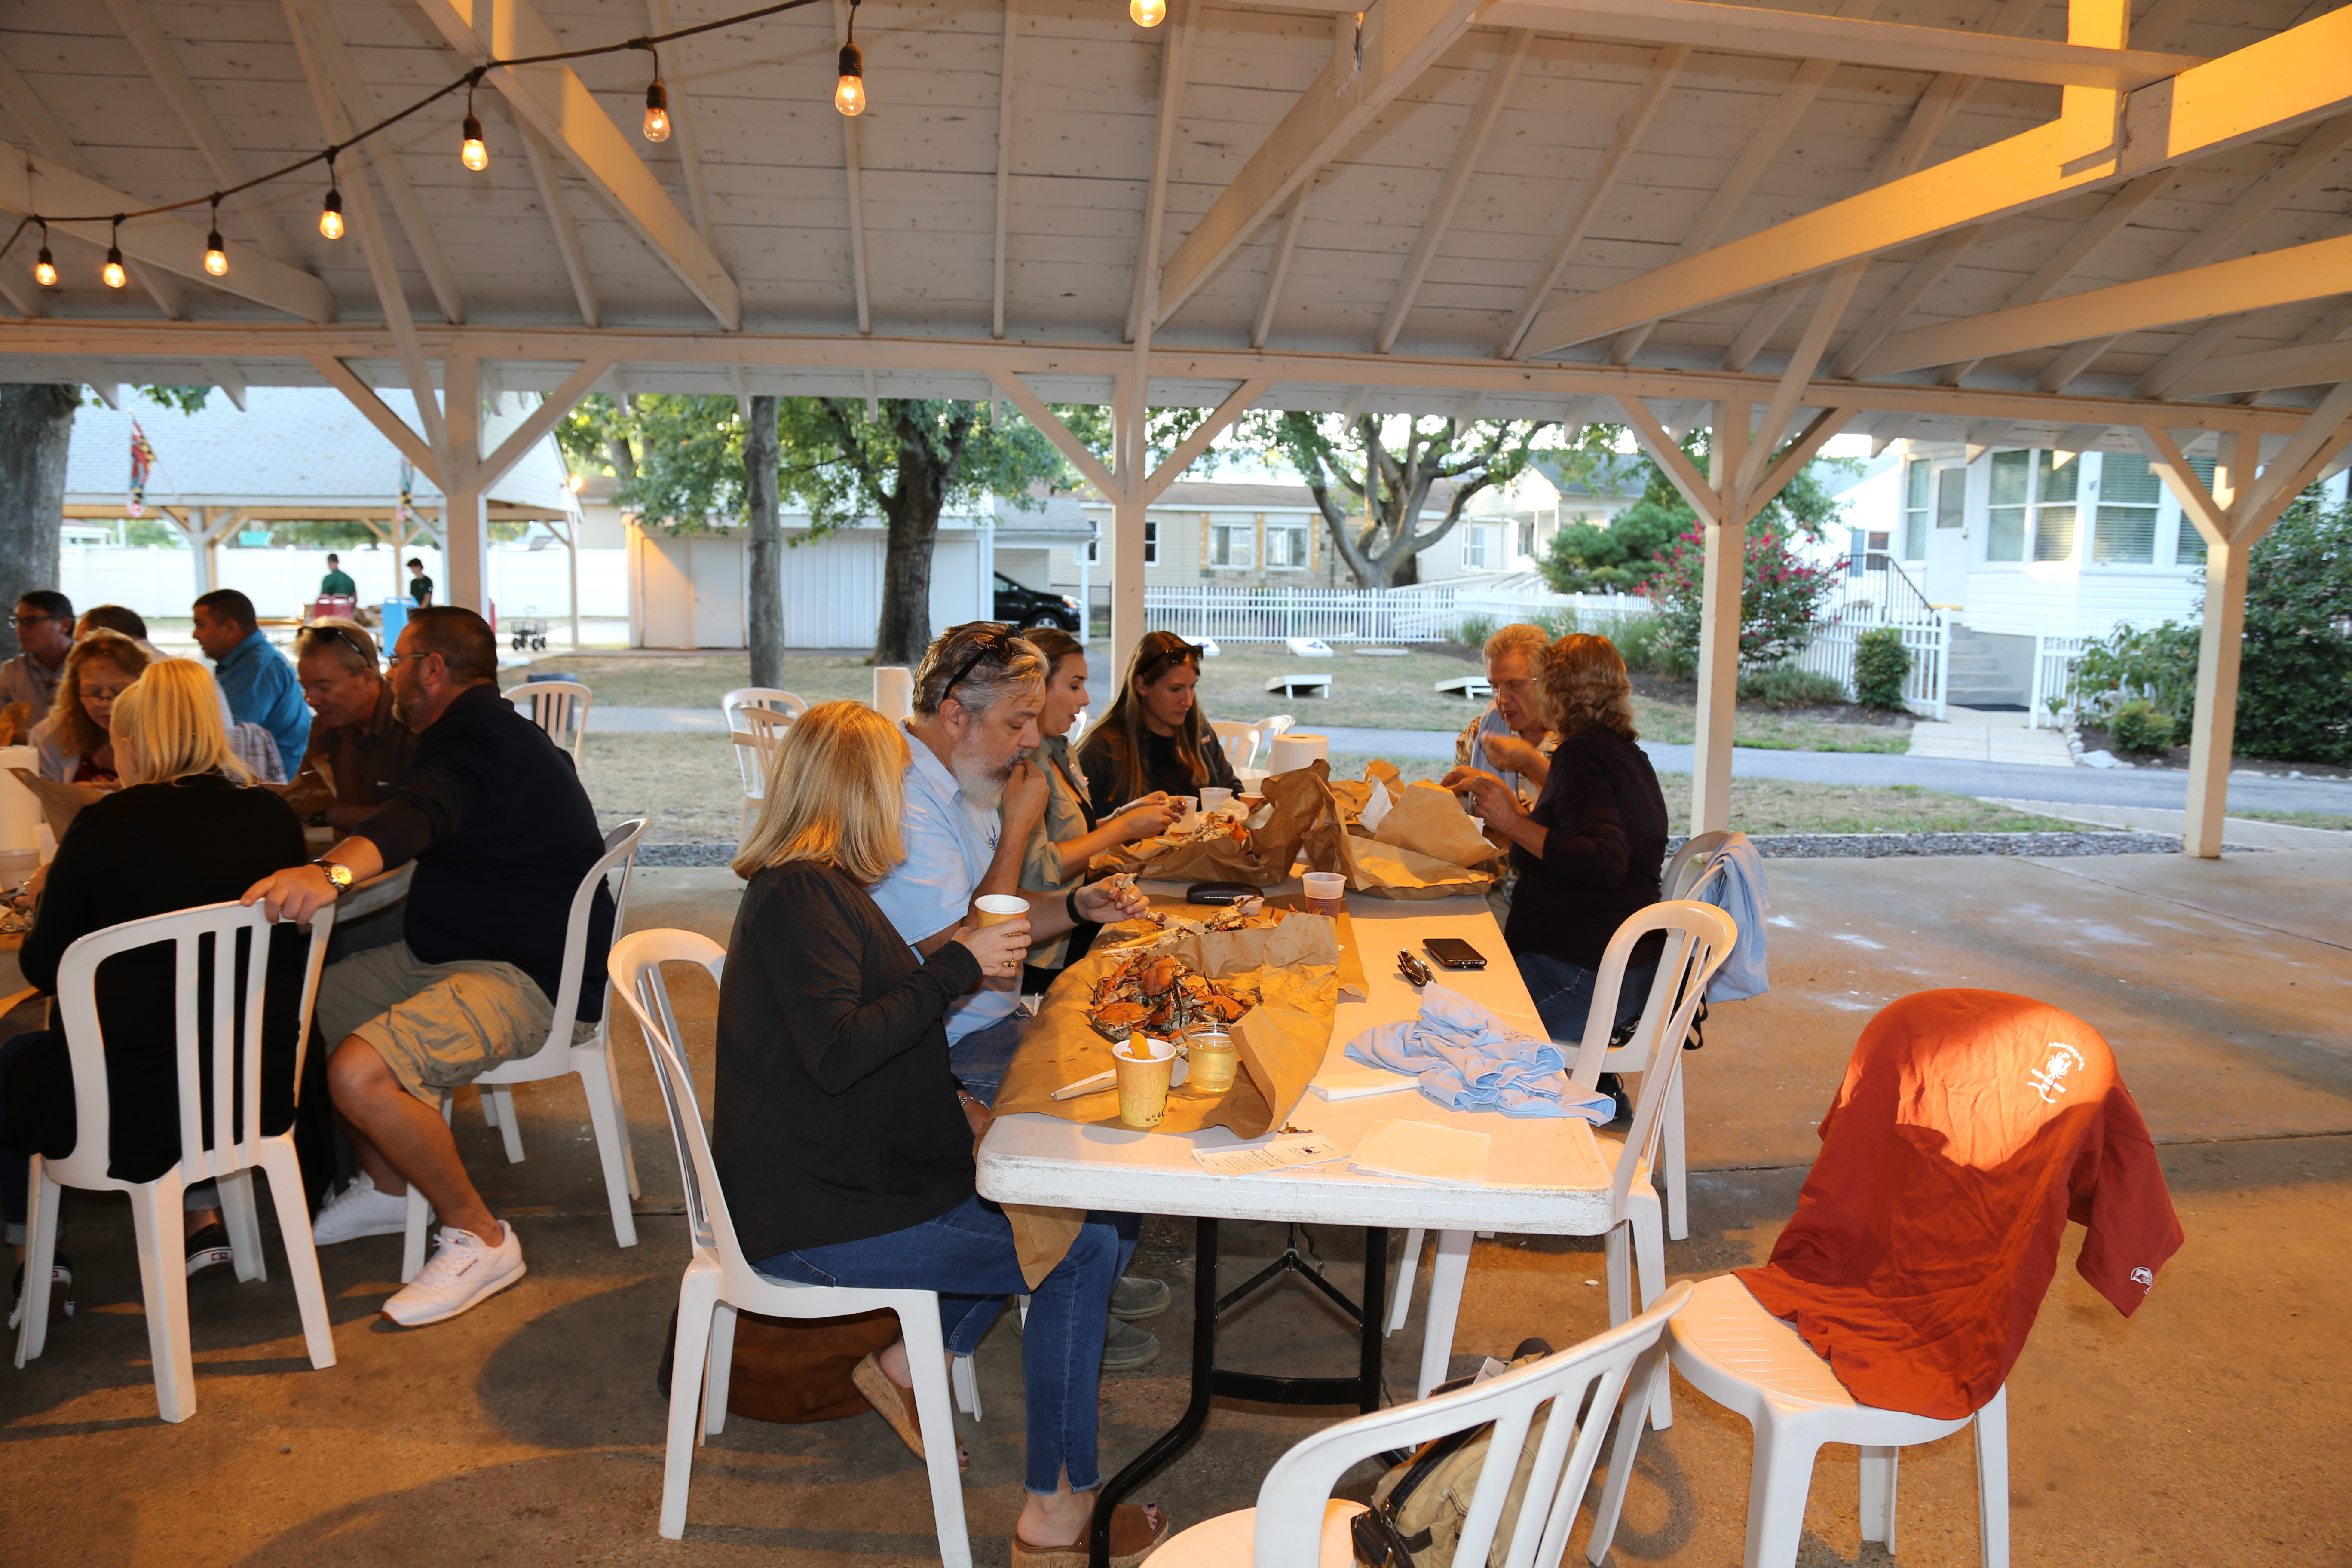 Printing-and-Graphics-Association-crab-feast-2019-kurtz-beach-IMG 1496